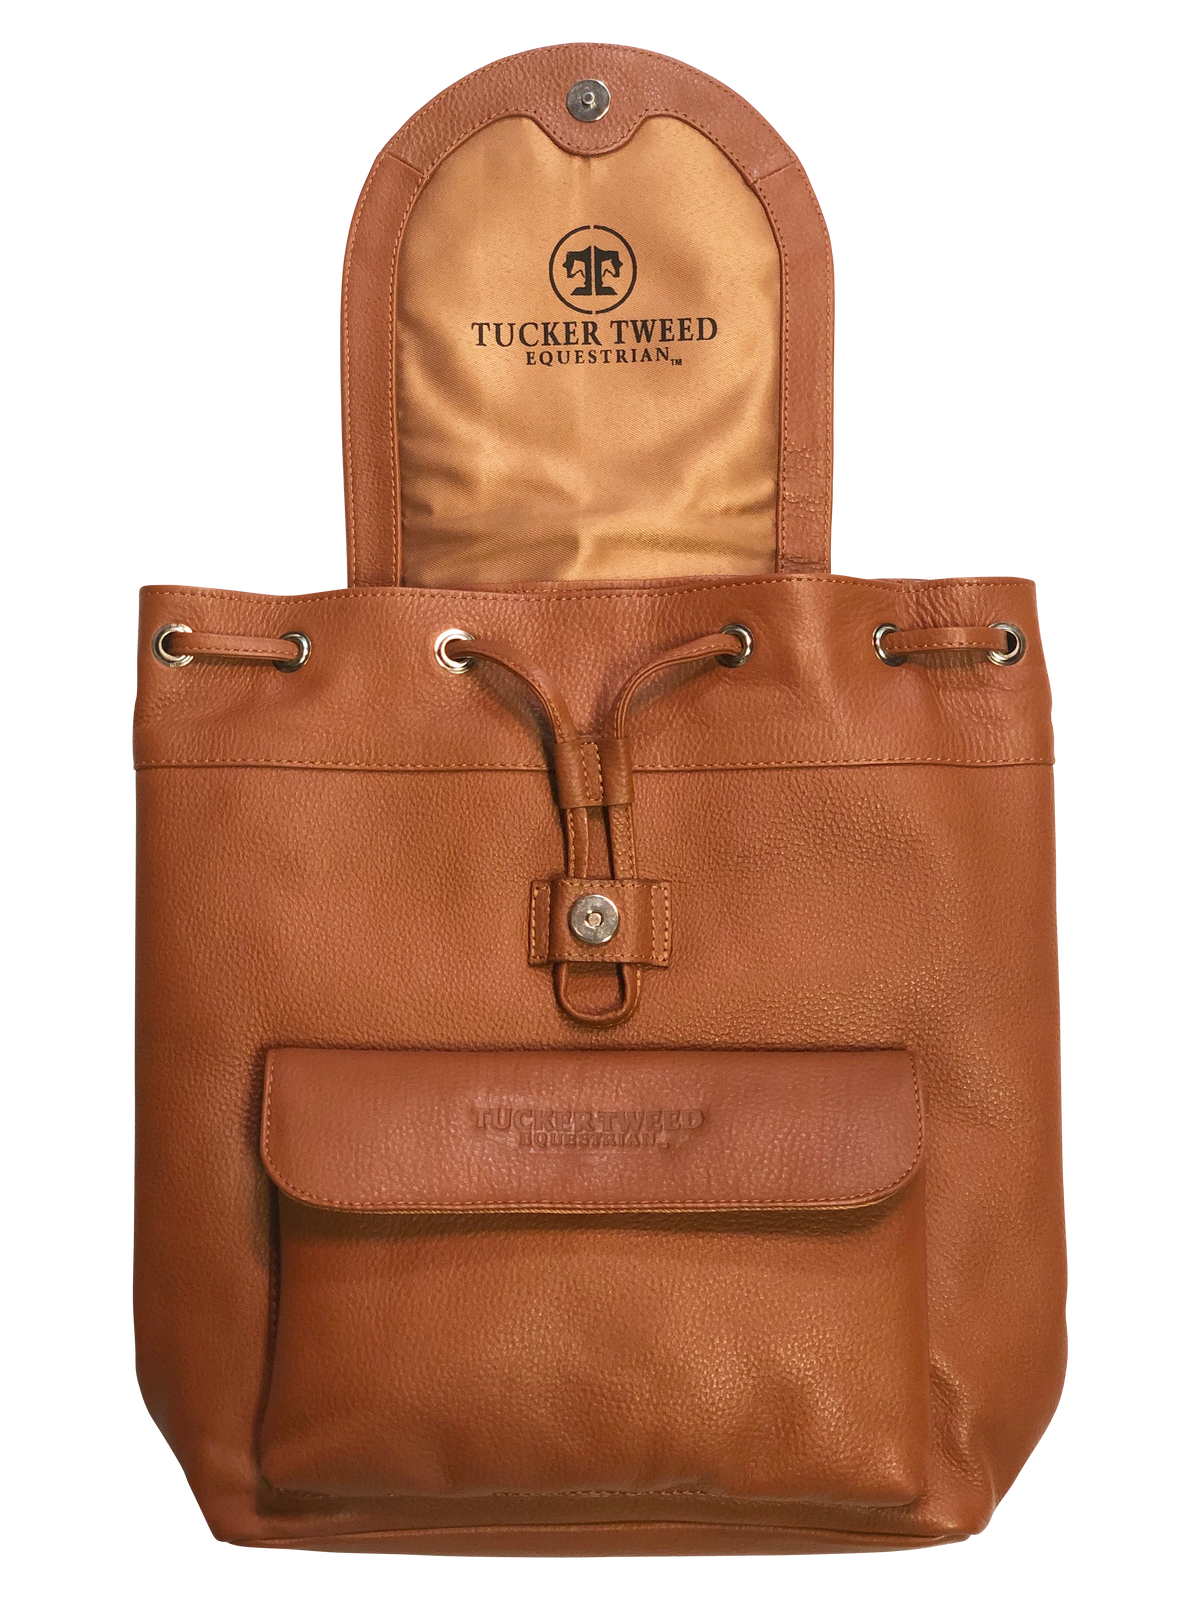 Tucker Tweed Equestrian Leather Handbags Brandywine Backpack: Dressage